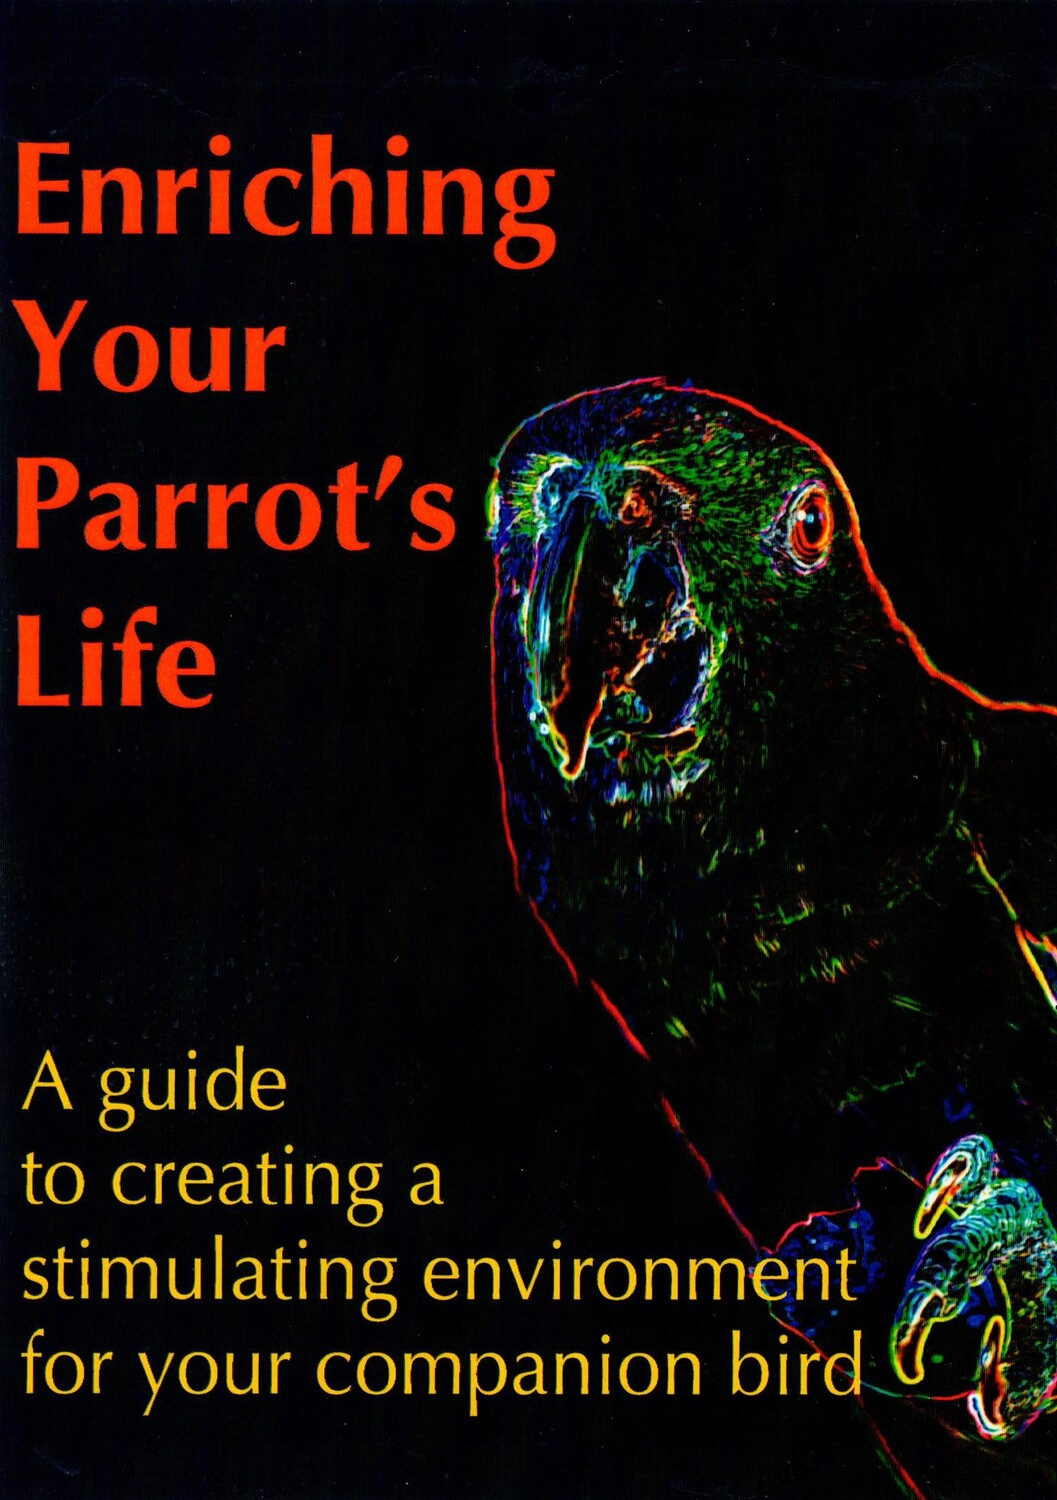 Enriching Your Parrot's Life - DVD lecture presented by Robin Shewokis